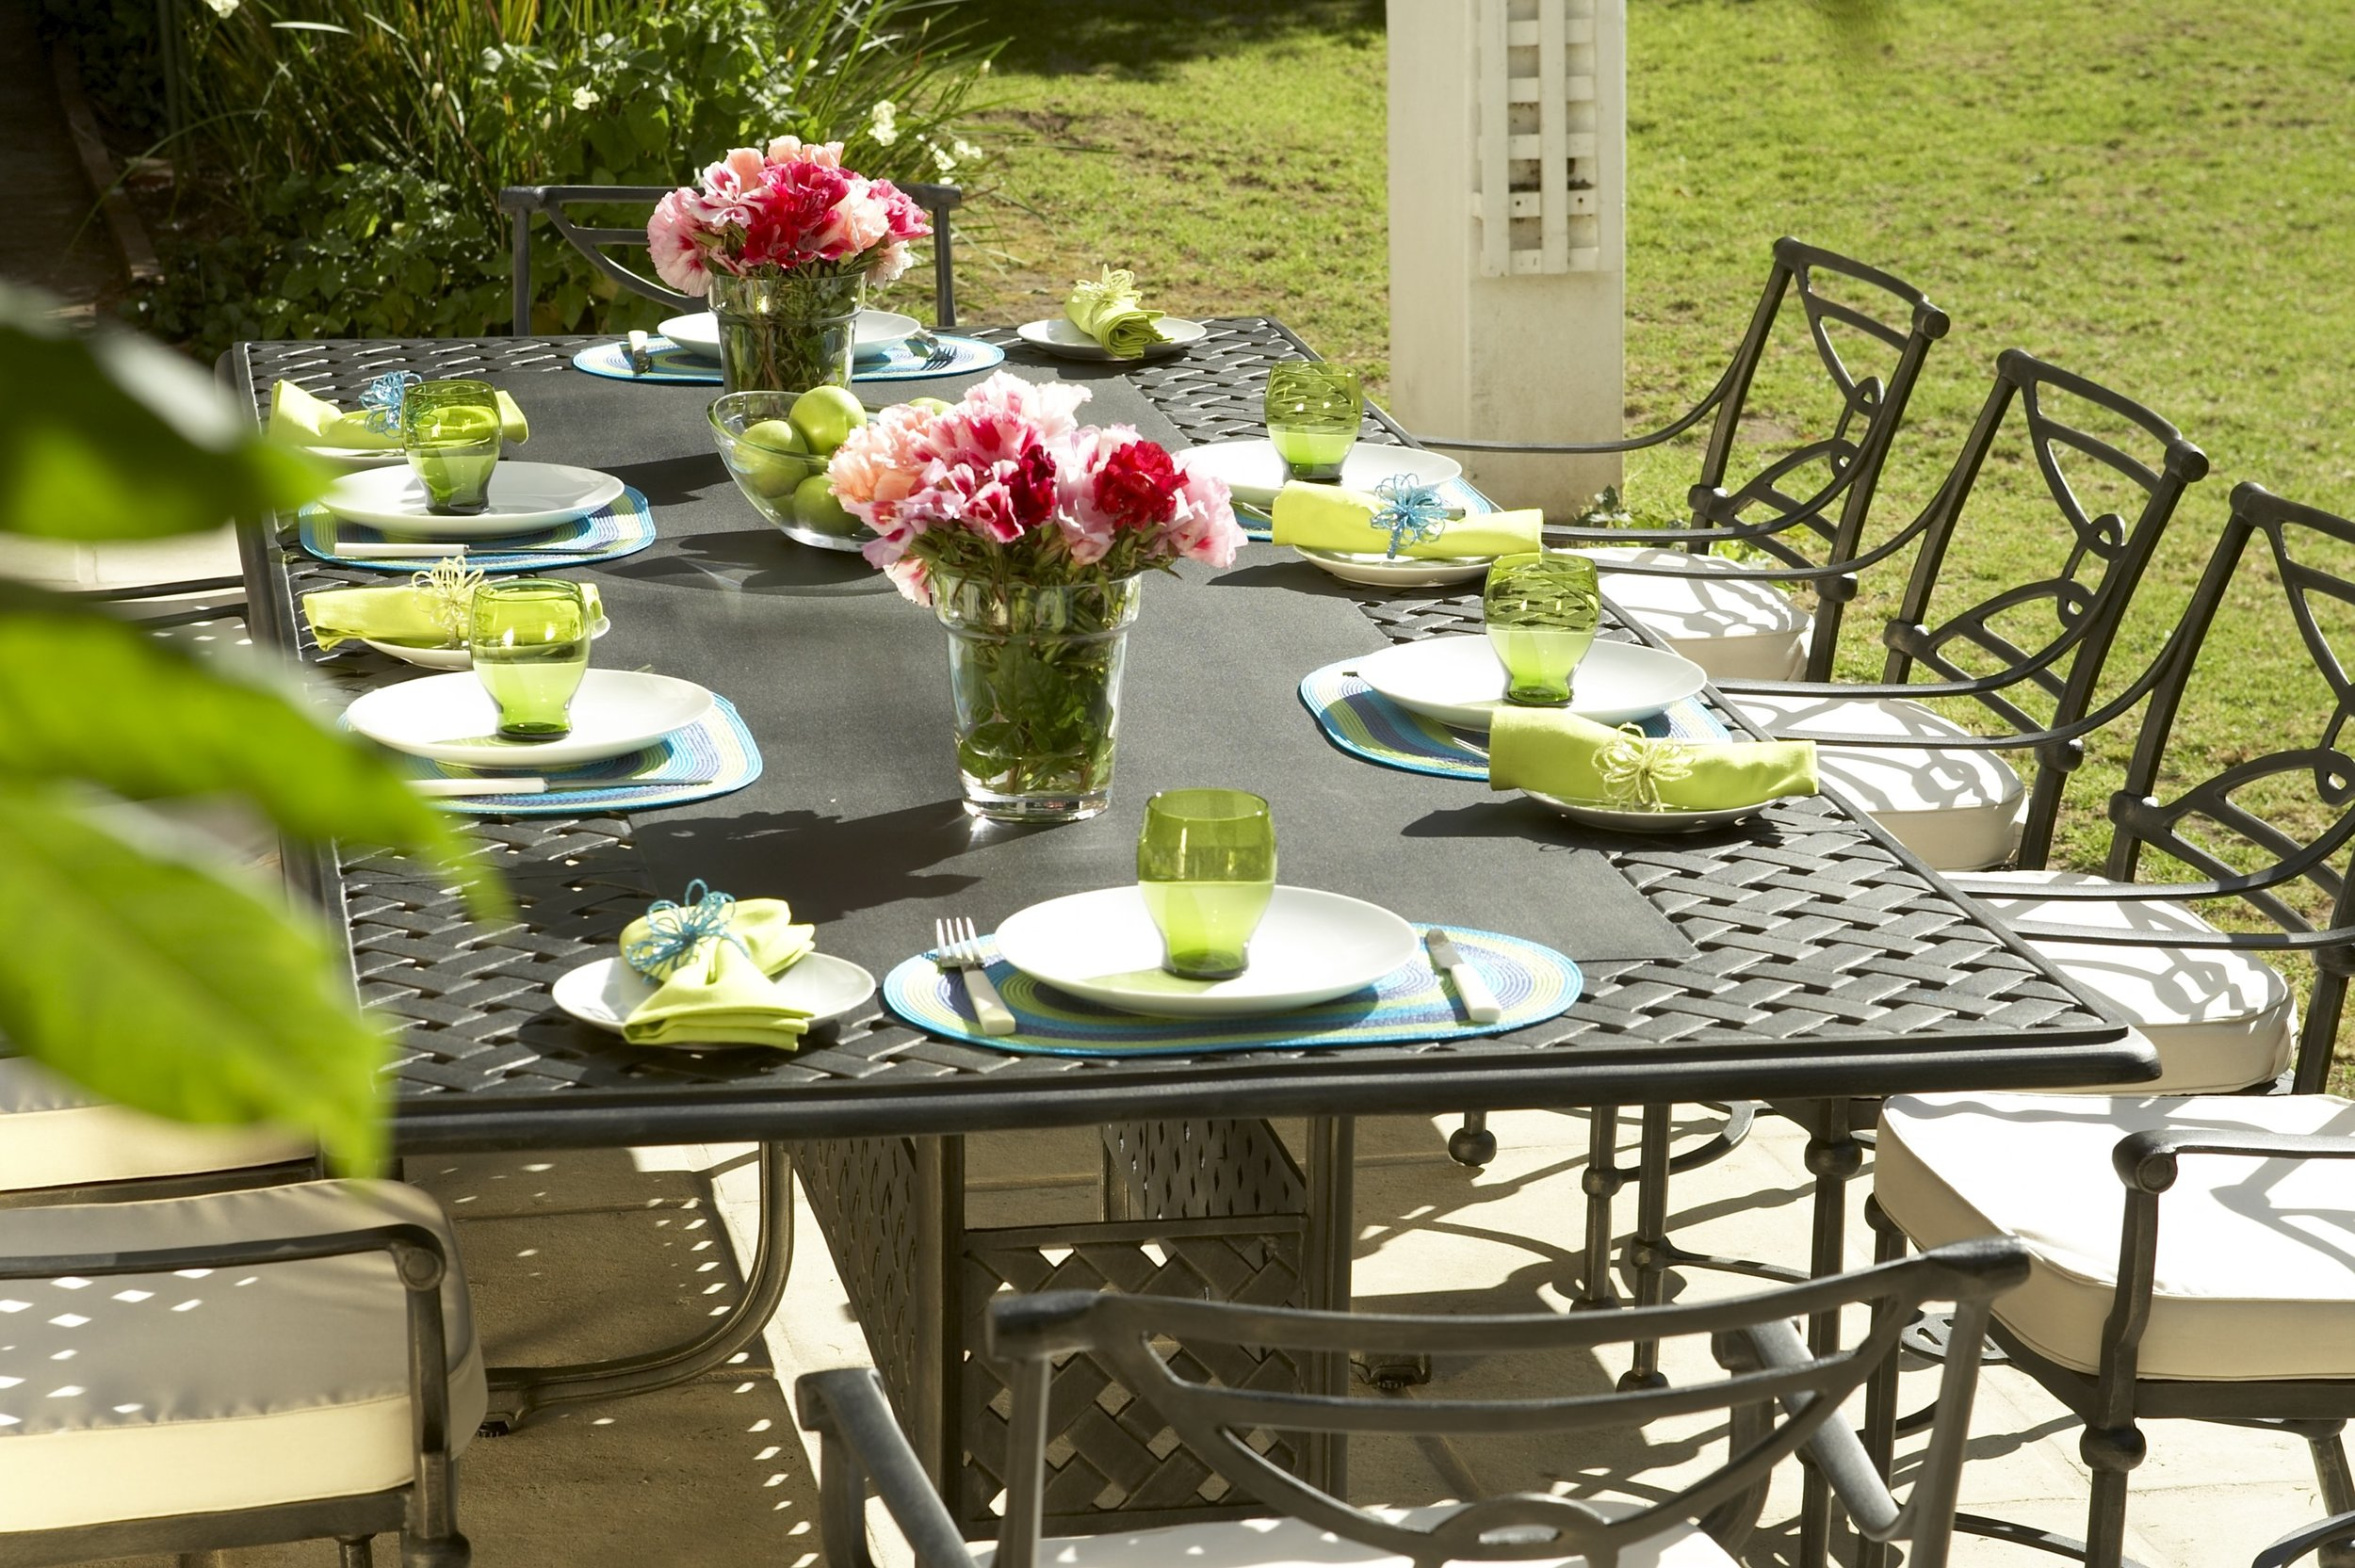 Verona 10 seater table with box base leg design and Baxter carvers